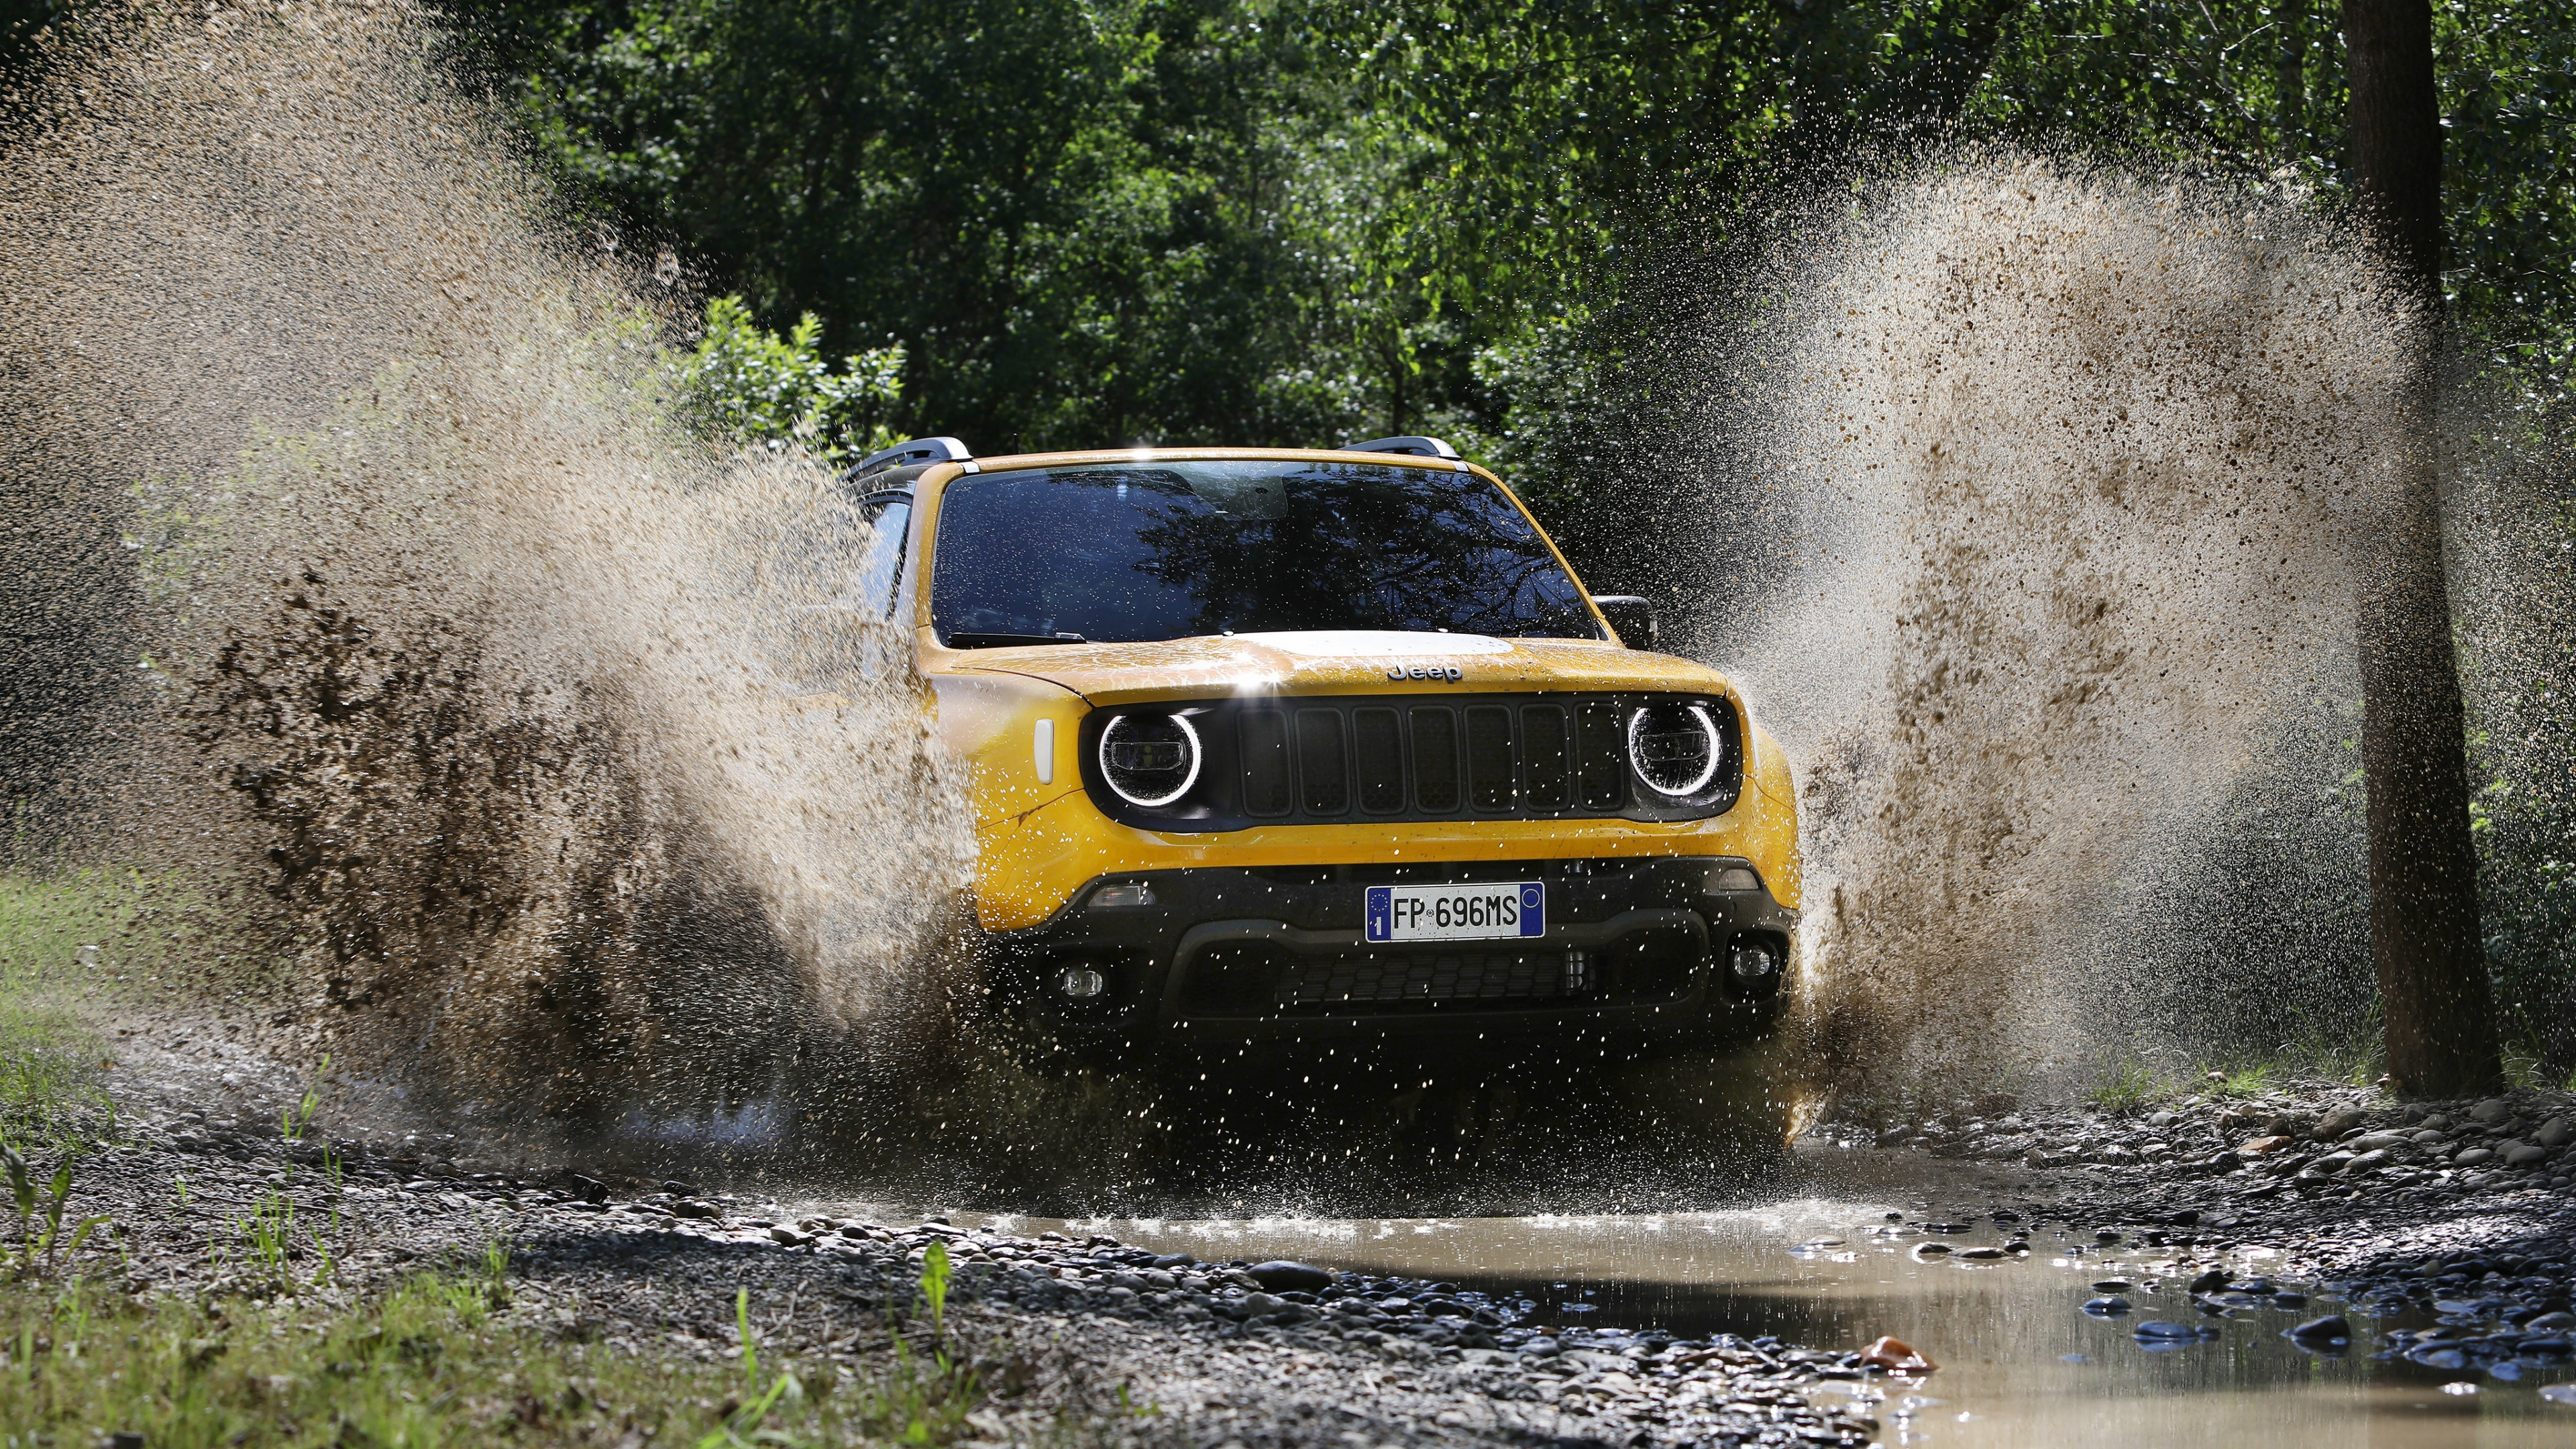 4k renegade jeep hd trailhawk wallpapers 1080 ultra 1920 2160 resolutions 1440 2560 hdcarwallpapers 1366